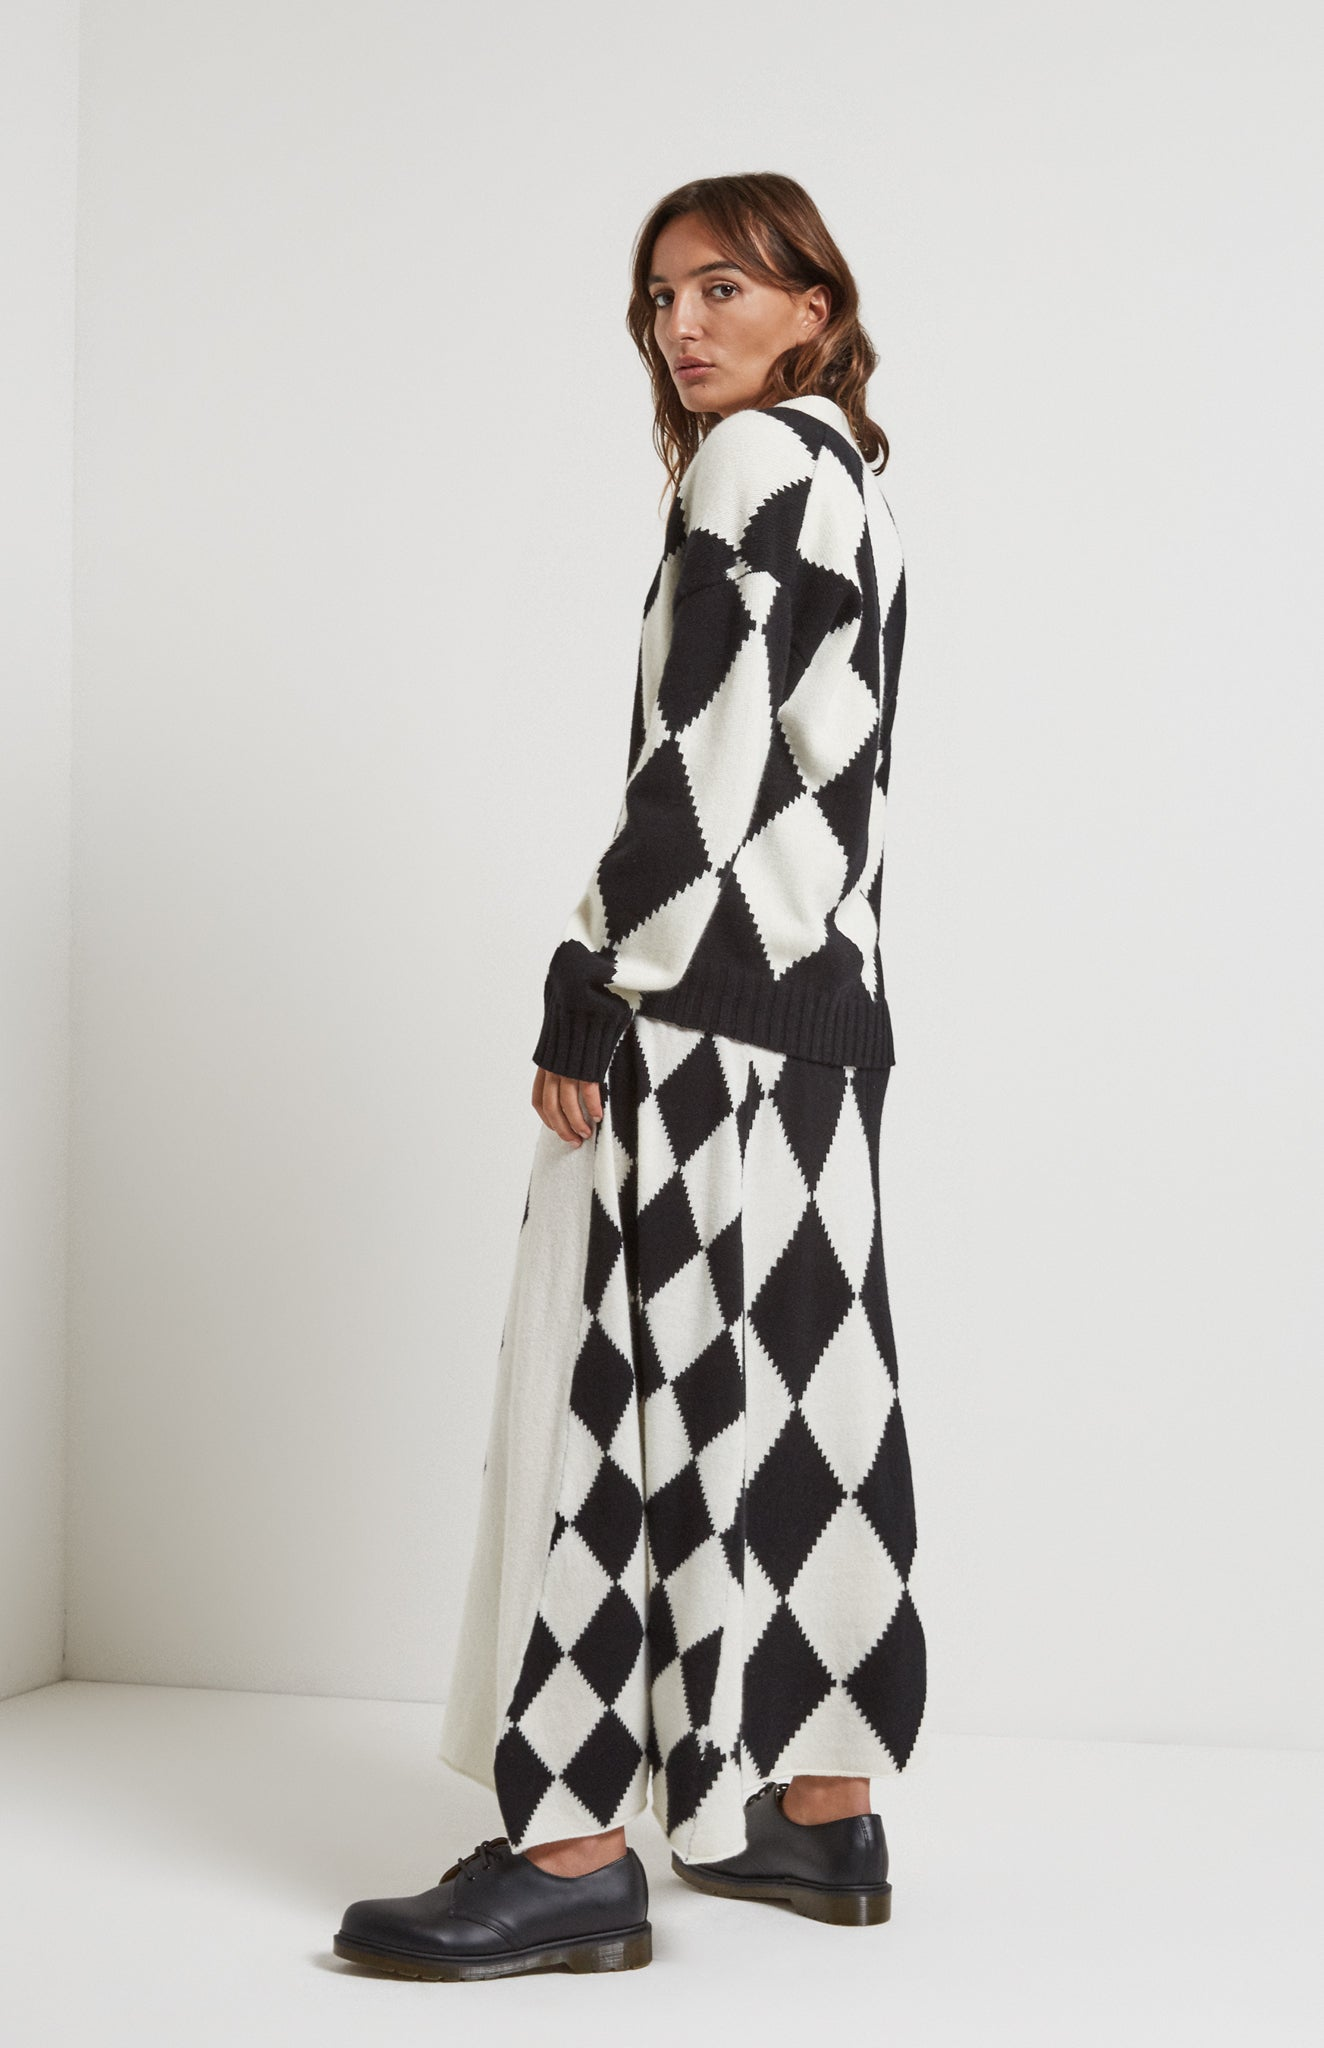 Graphic Argyle Panel Skirt In Black/Cream